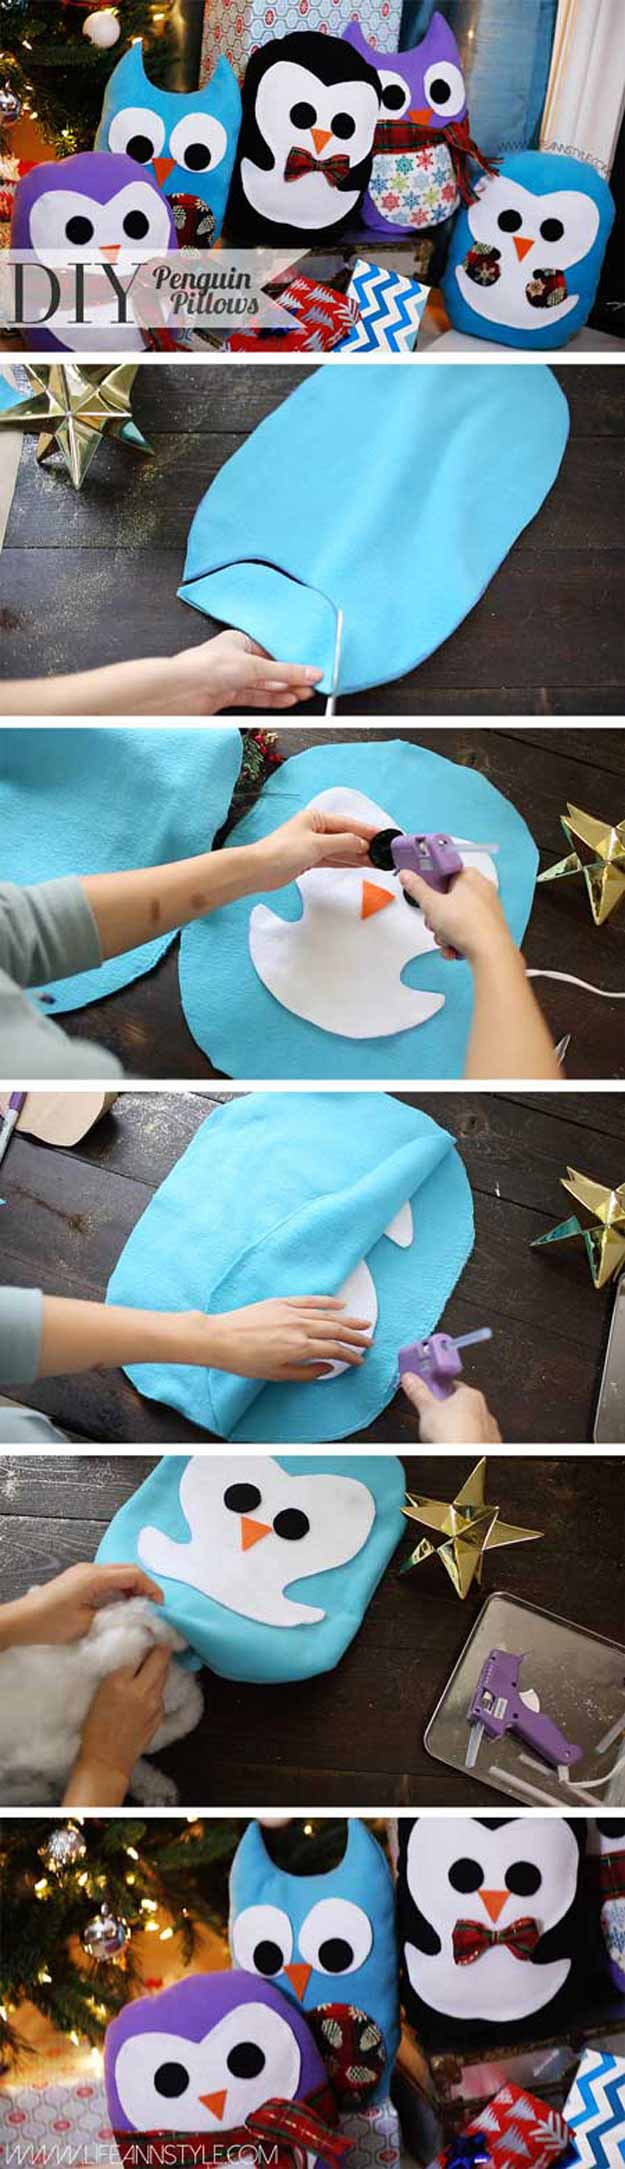 17-Adorable-DIY-Pillow-Ideas-DIY-Penguin-Pillows